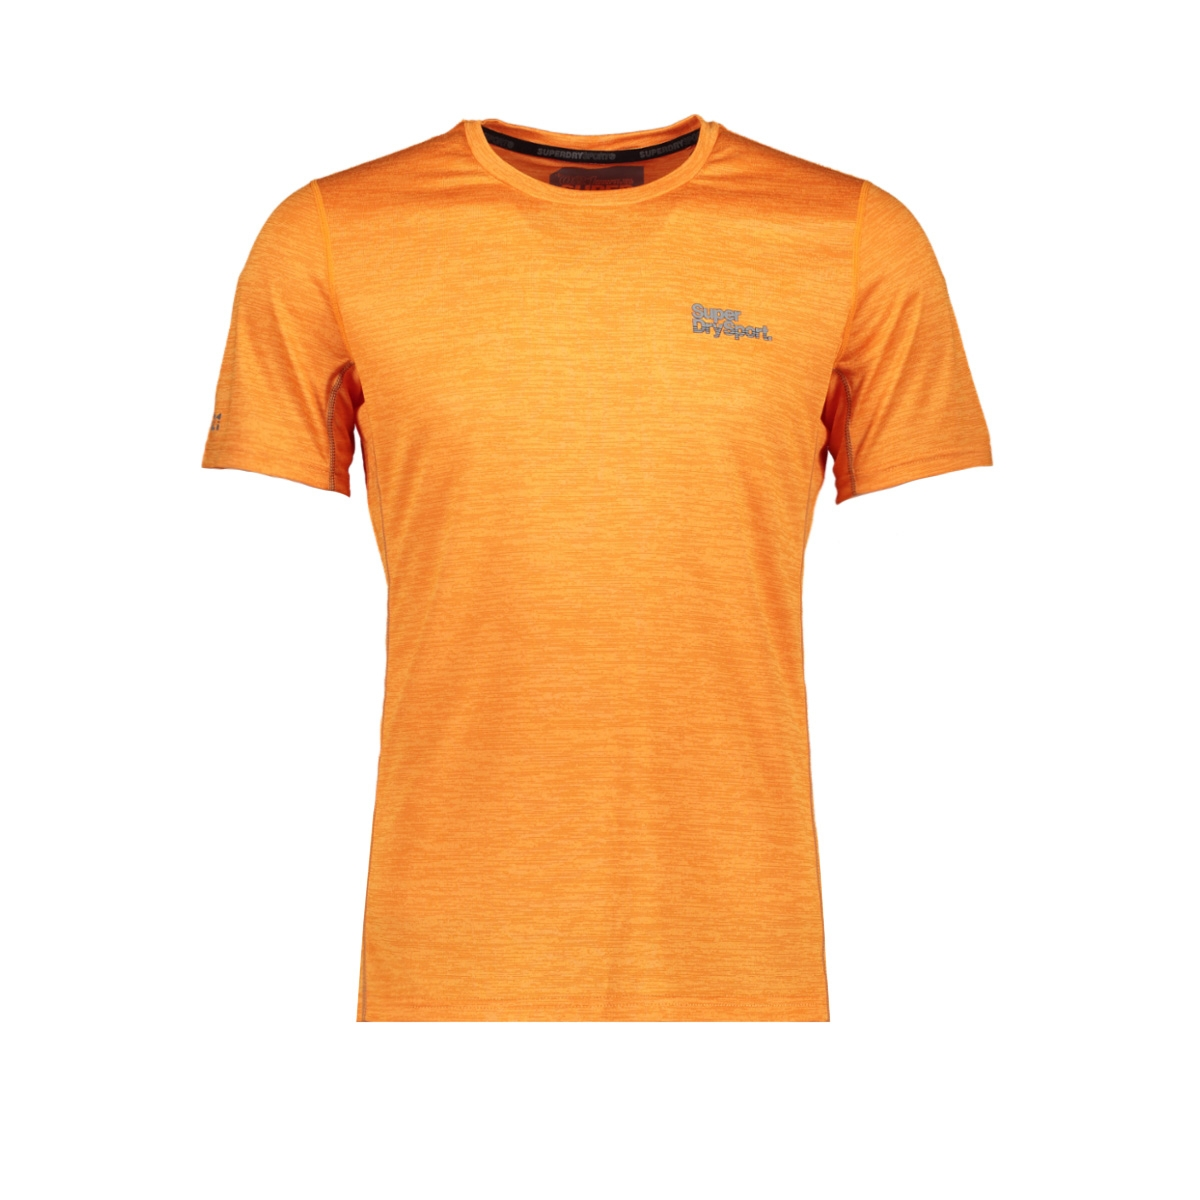 ms3007ar active training s/s tee superdry sport shirt bright orange space dye